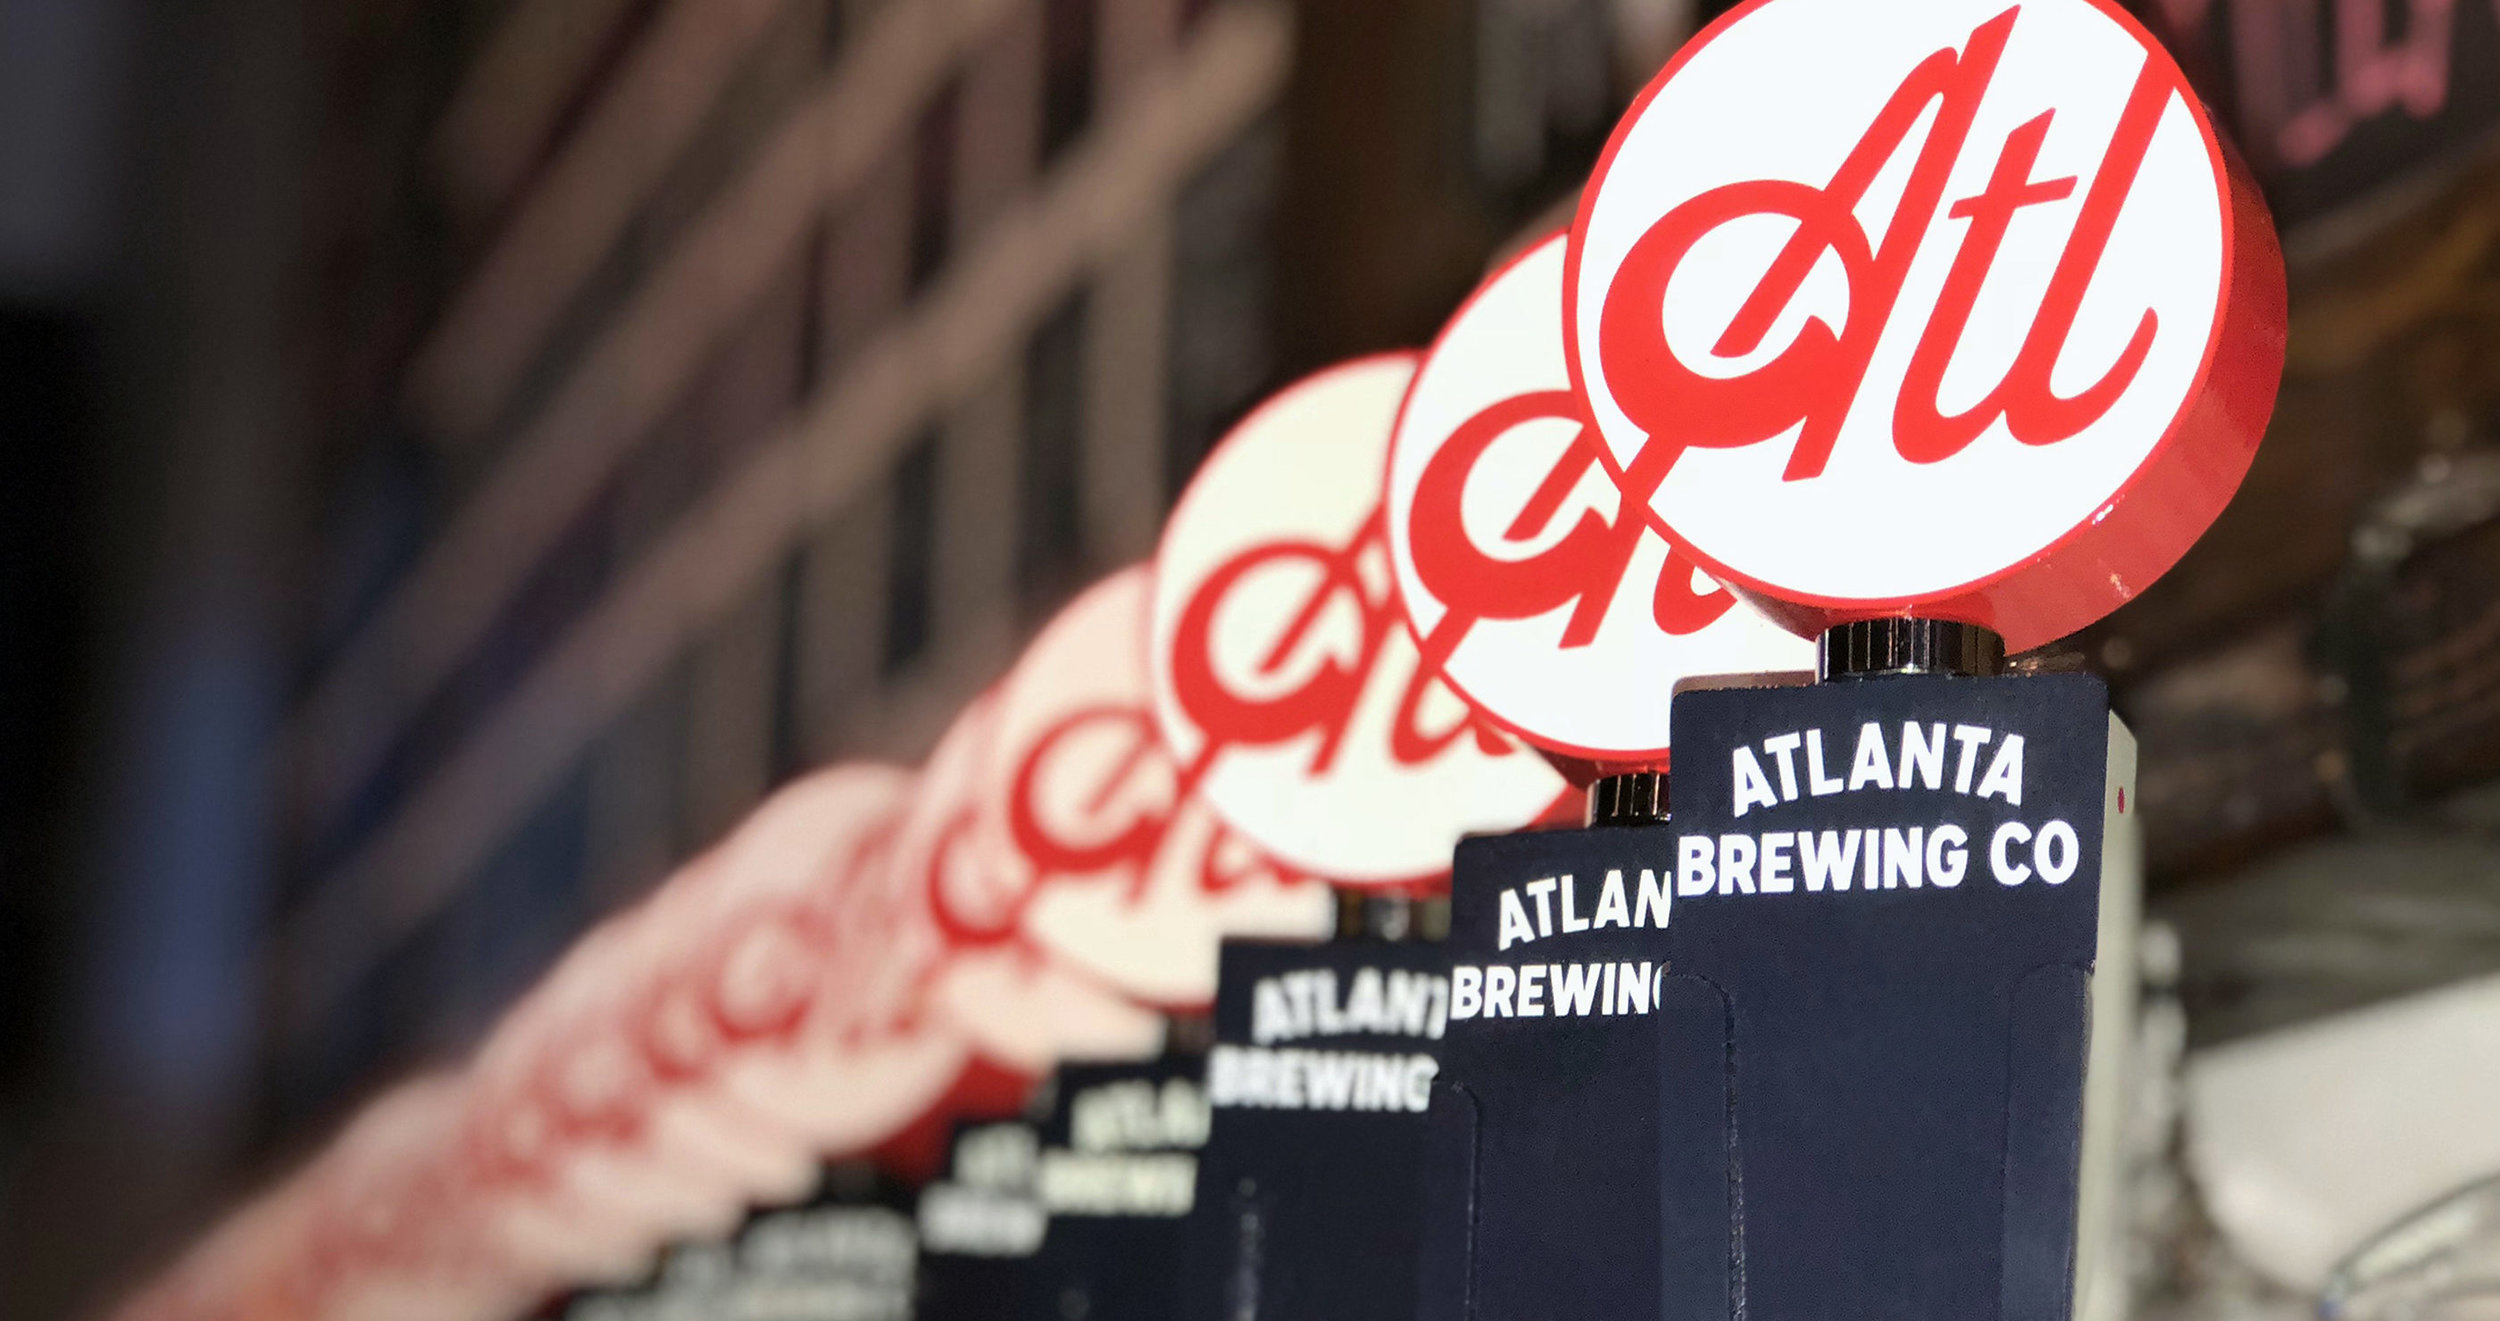 Beer & Branding: Atlanta Brewing